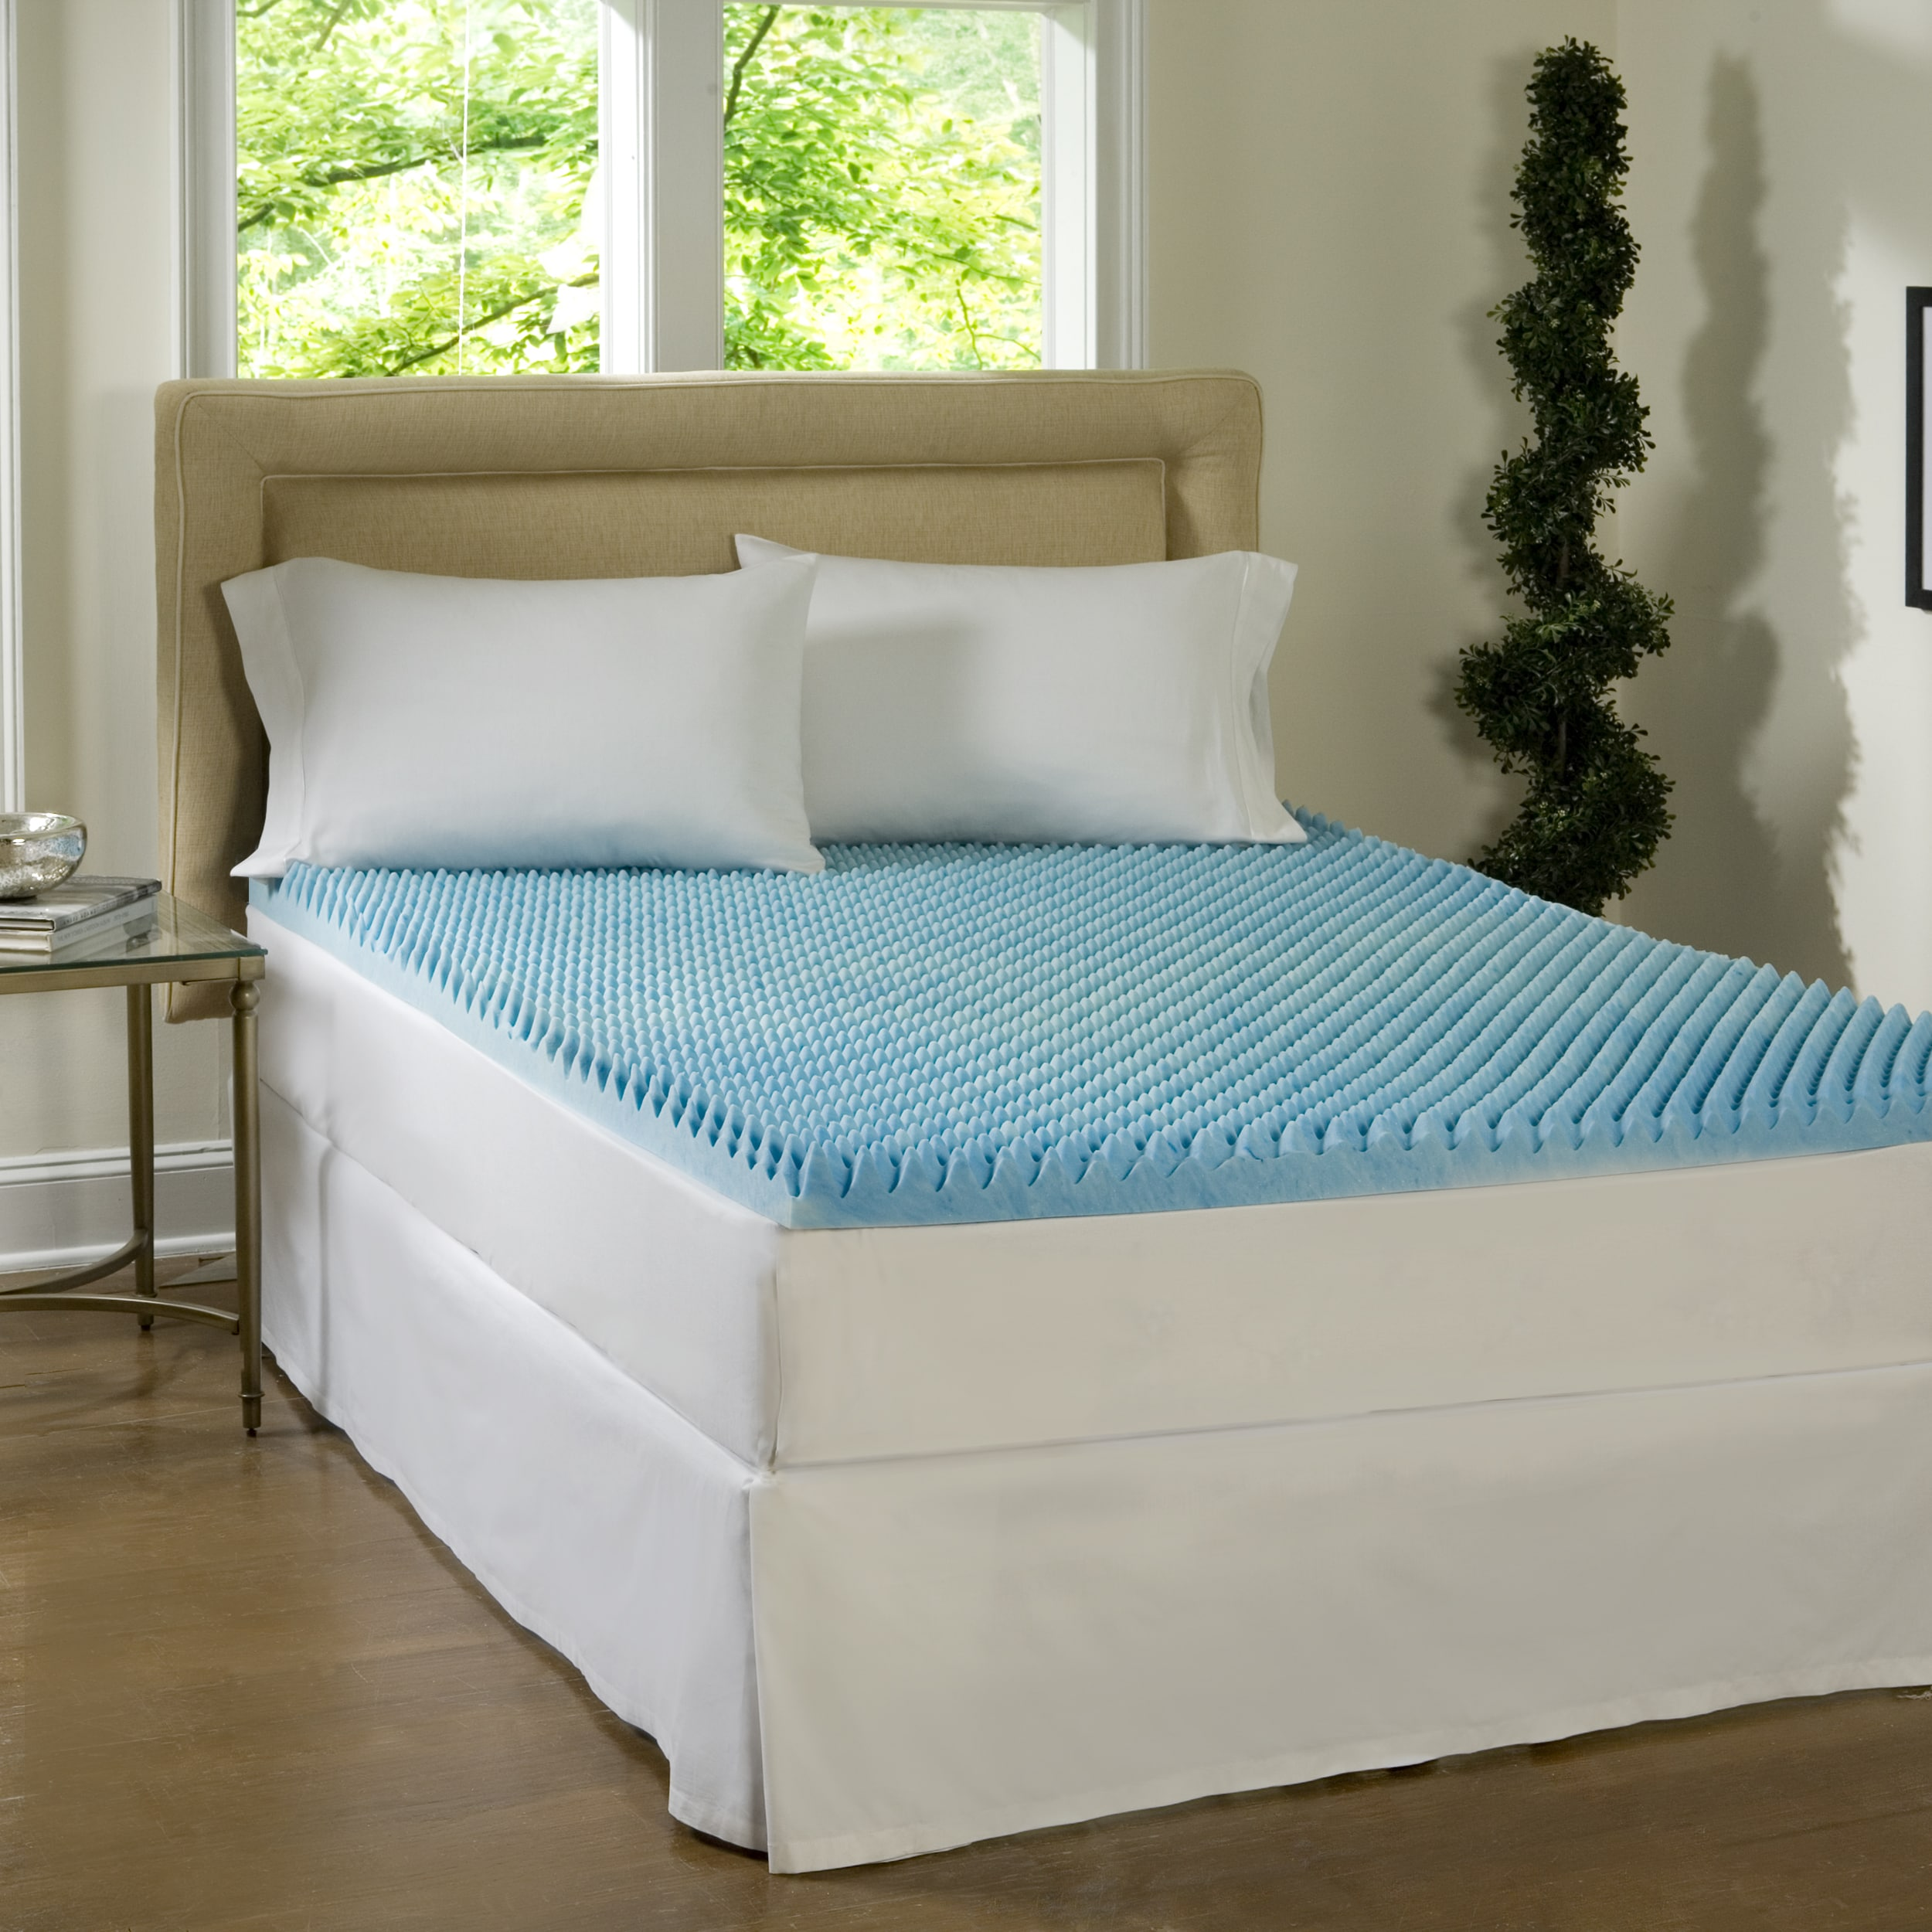 inch product simmons curv polysilk today shipping cover with bedding bath topper gel overstock free mattress memory sculpted foam